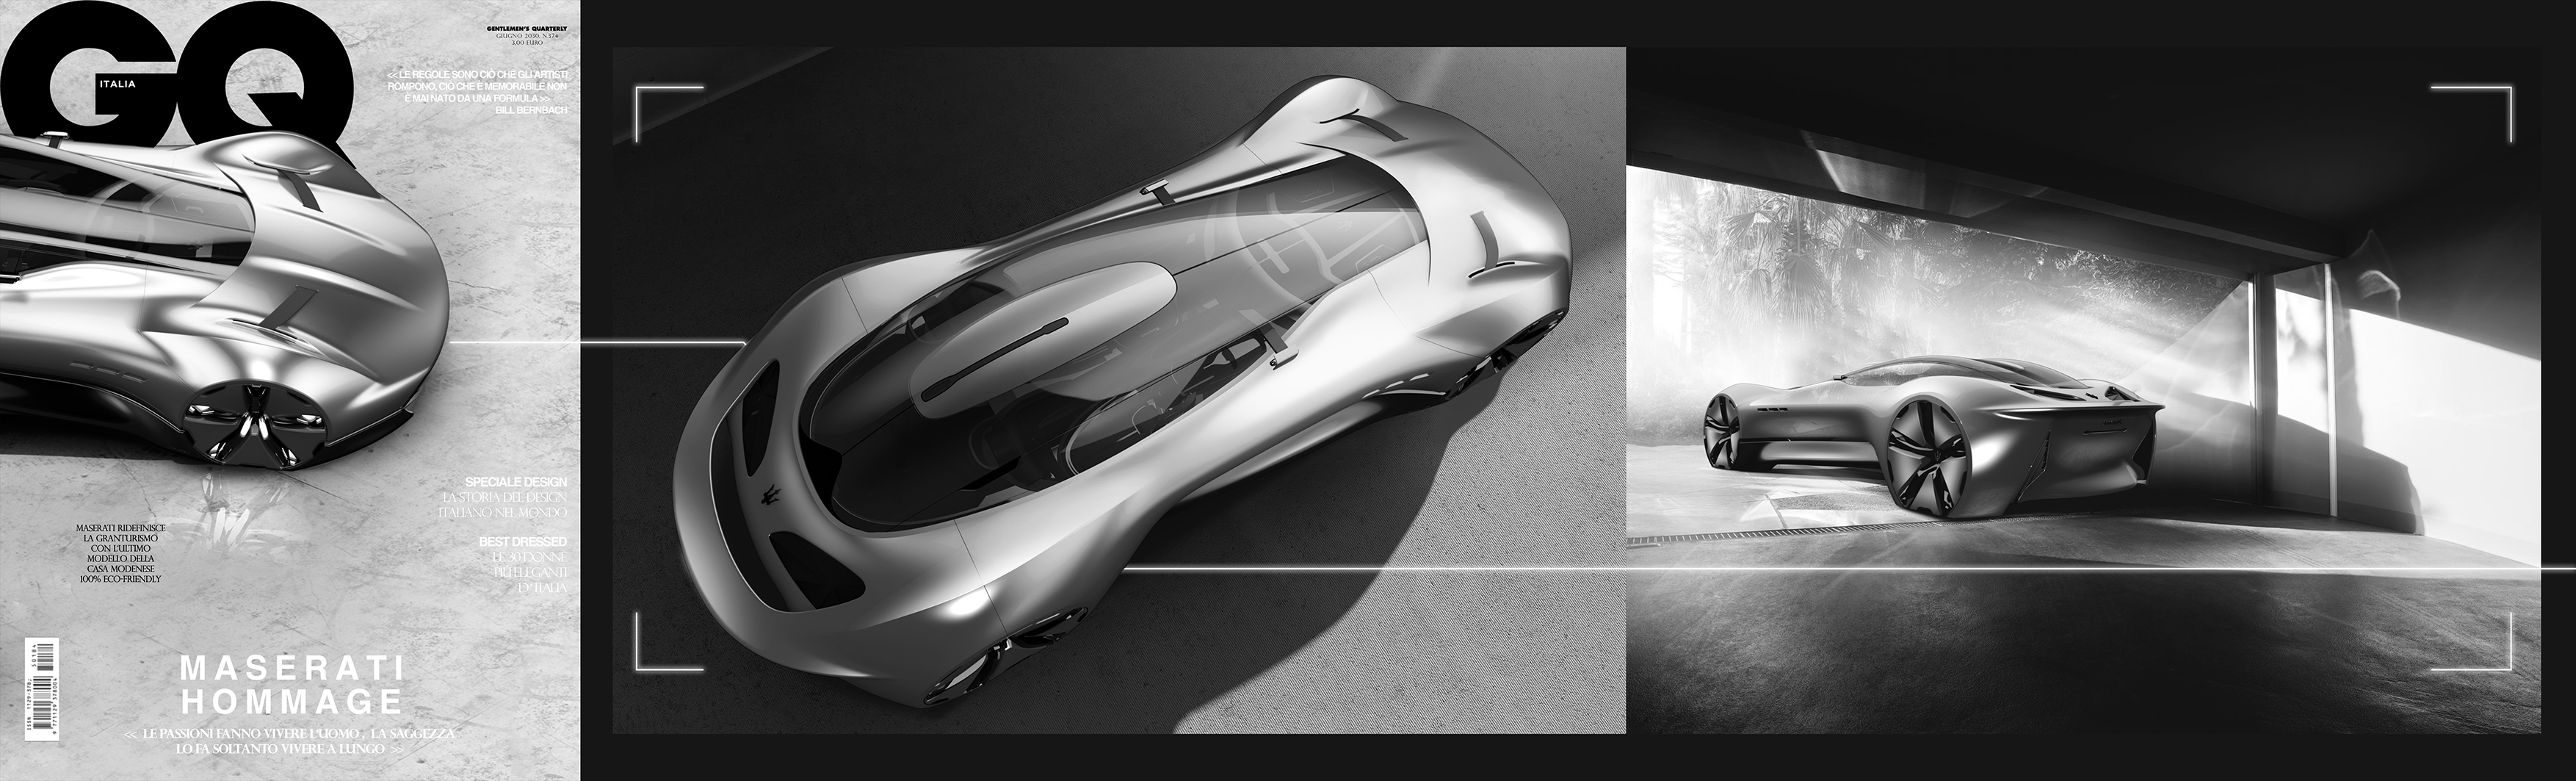 Maserati Hommage on